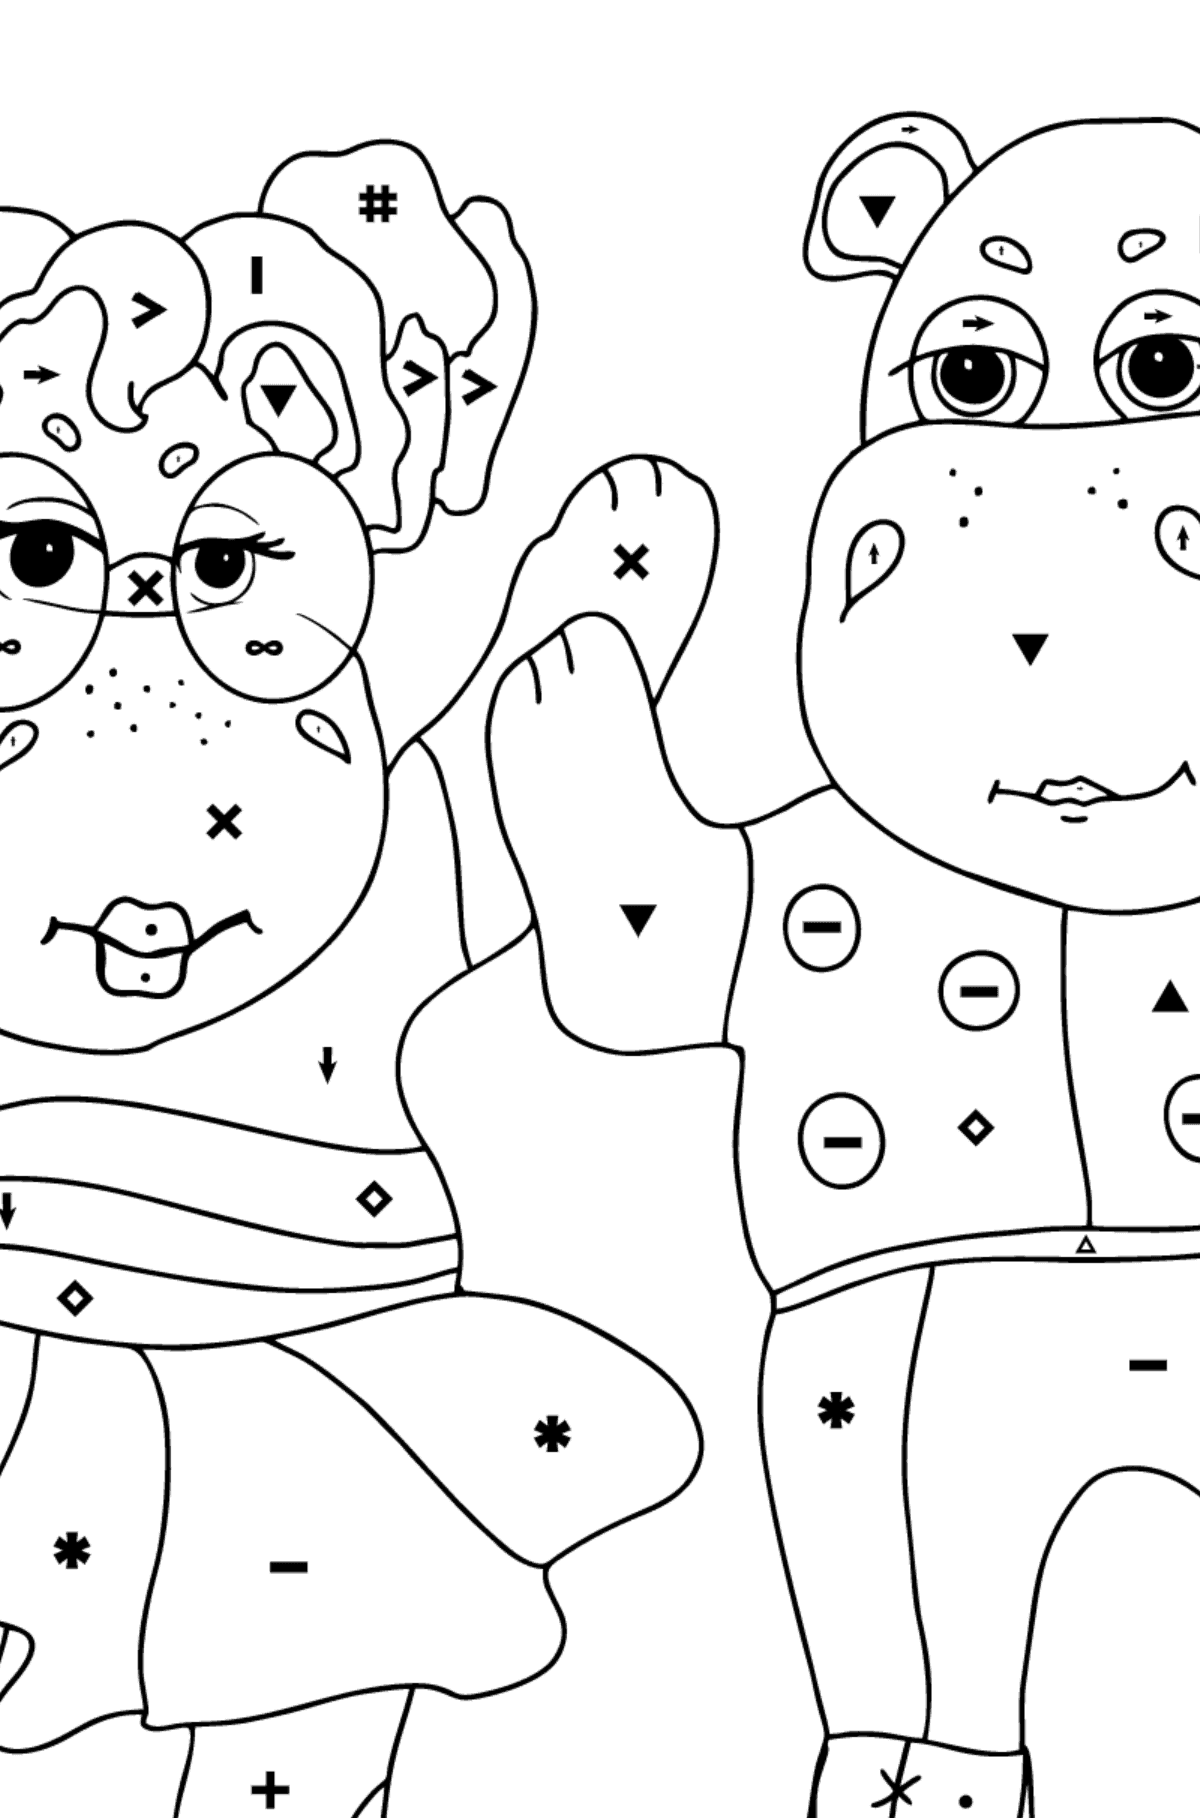 Coloring Page - Hippos are Dancing for Kids  - Color by Special Symbols